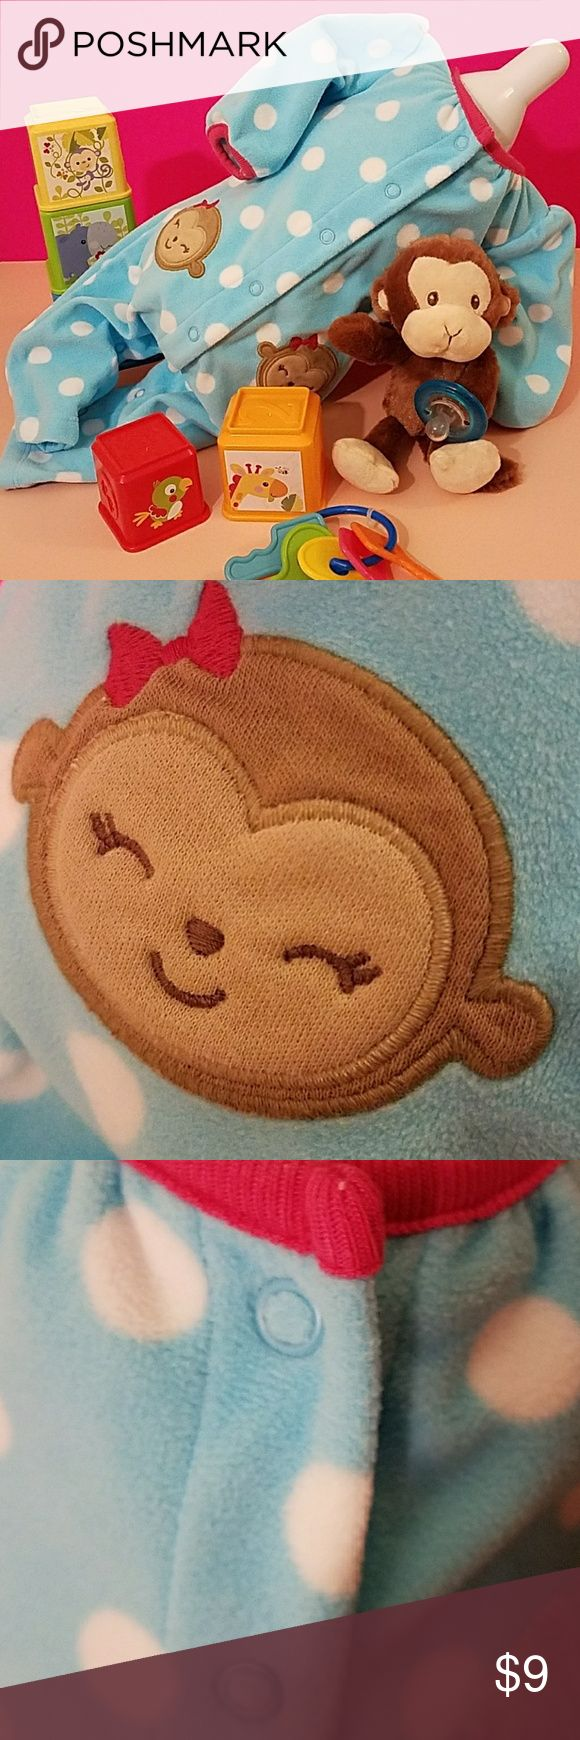 Happy Monkey Infant Sleeper This little monkey sleeper will make you go bananas! This adorable sleeper is fleece and open footed. Snaps along the front and bottom for easy changing. Also has a puff shoulder effect that you will think it's the cutest! Carter's Pajamas Nightgowns